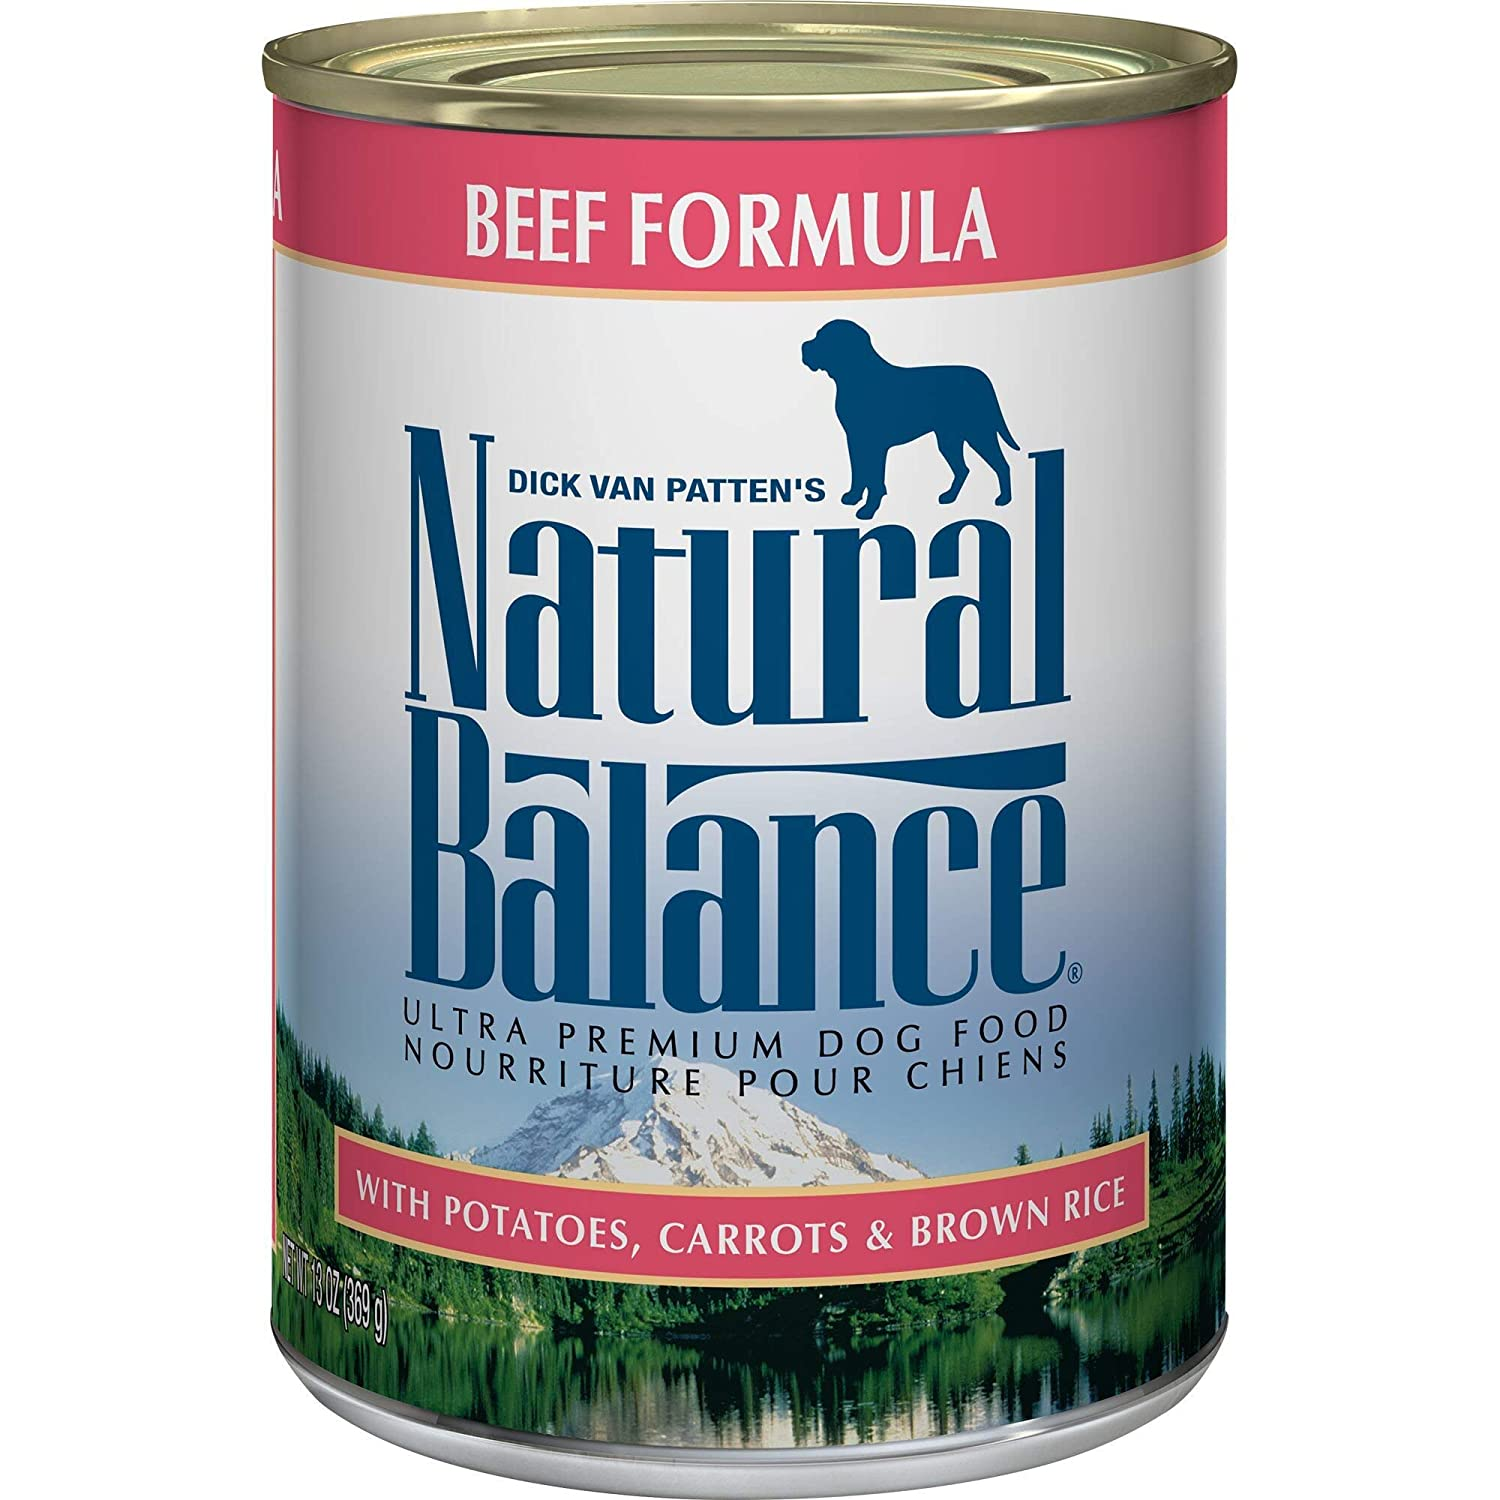 5.Natural Balance Ultra Premium Wet Dog Food